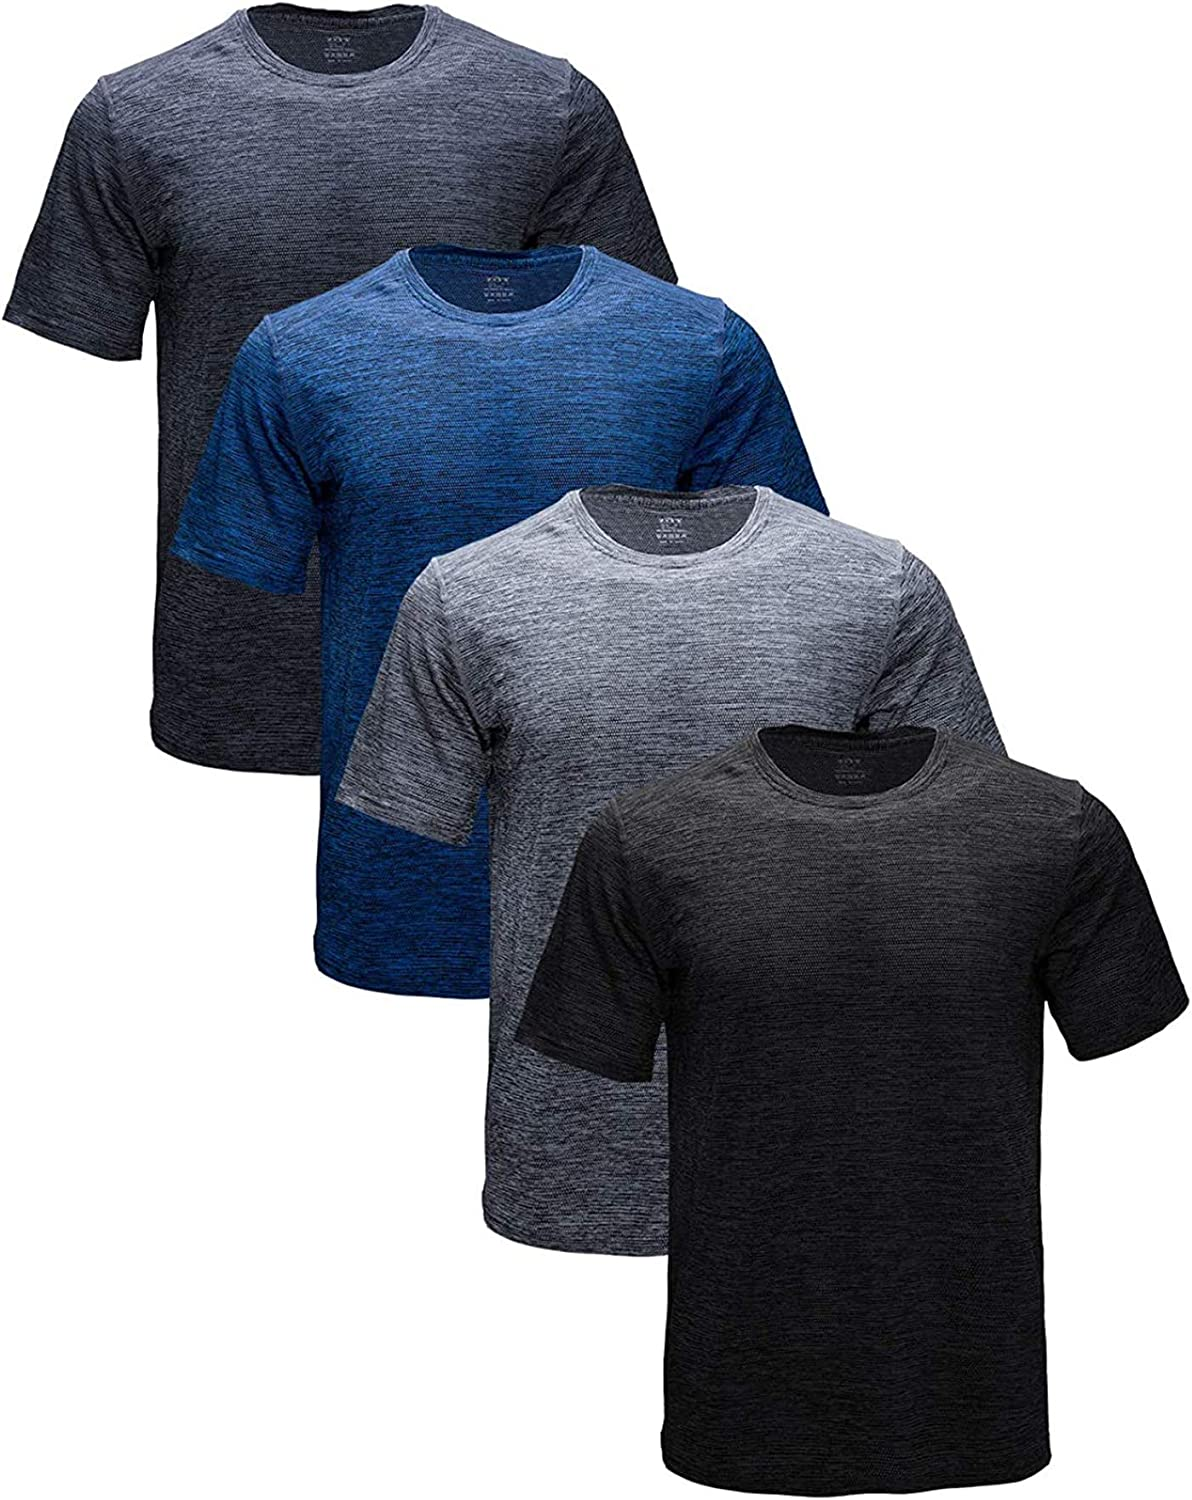 ZITY Mens Quick Dry Discount mail order T-Shirt Fit Ru Moisture-Wicking Athletic Max 74% OFF